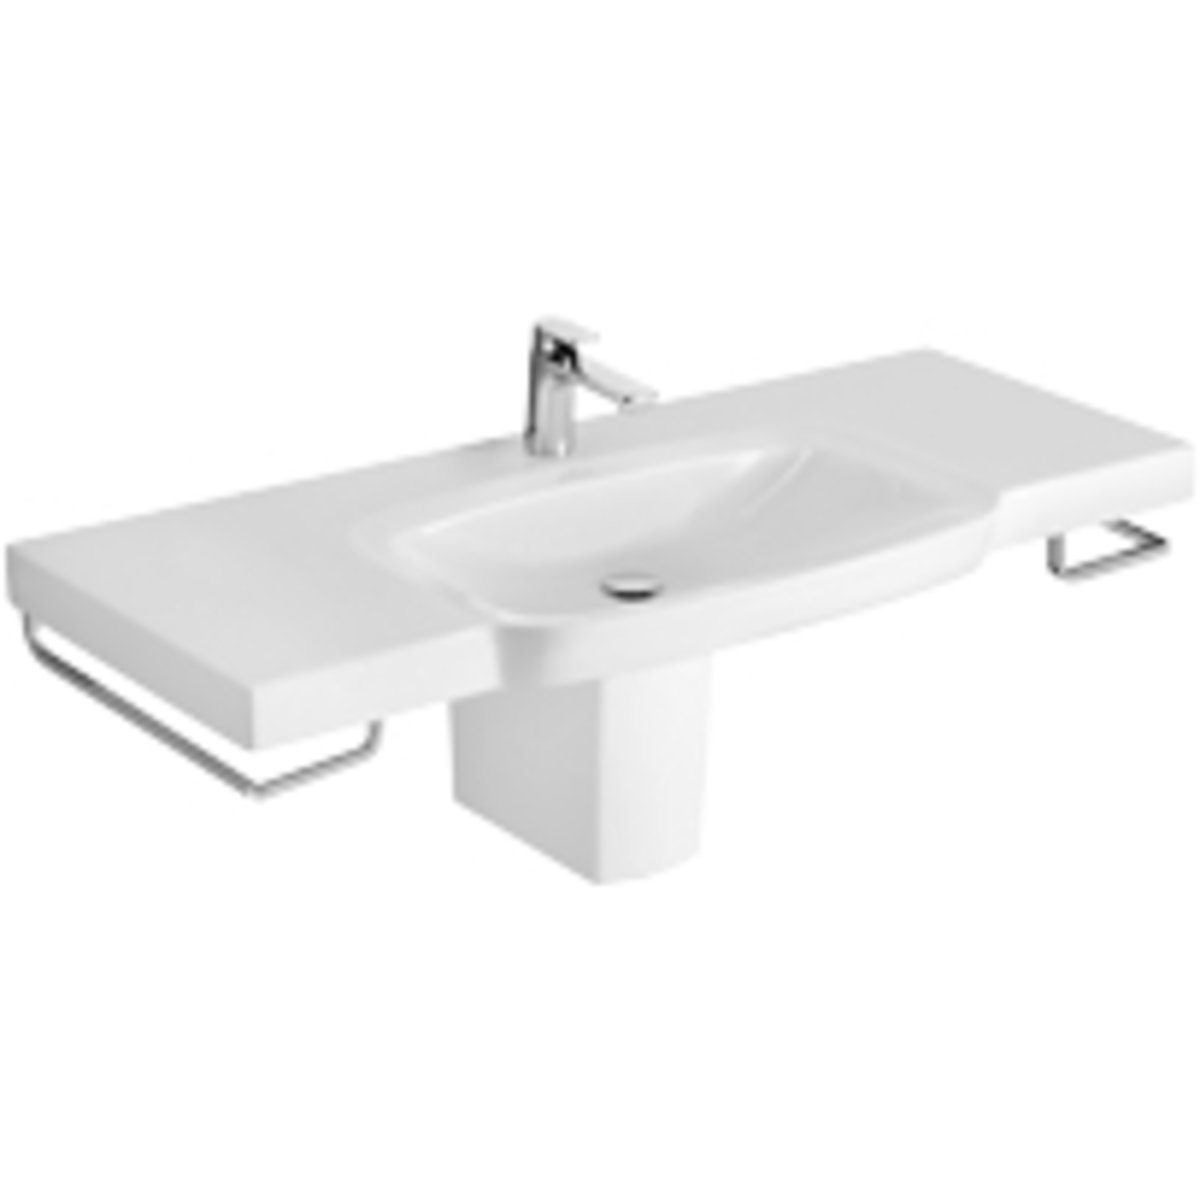 villeroy boch sentique subway 2 0 cache siphon pour lavabo avec set d 39 installation blanc. Black Bedroom Furniture Sets. Home Design Ideas